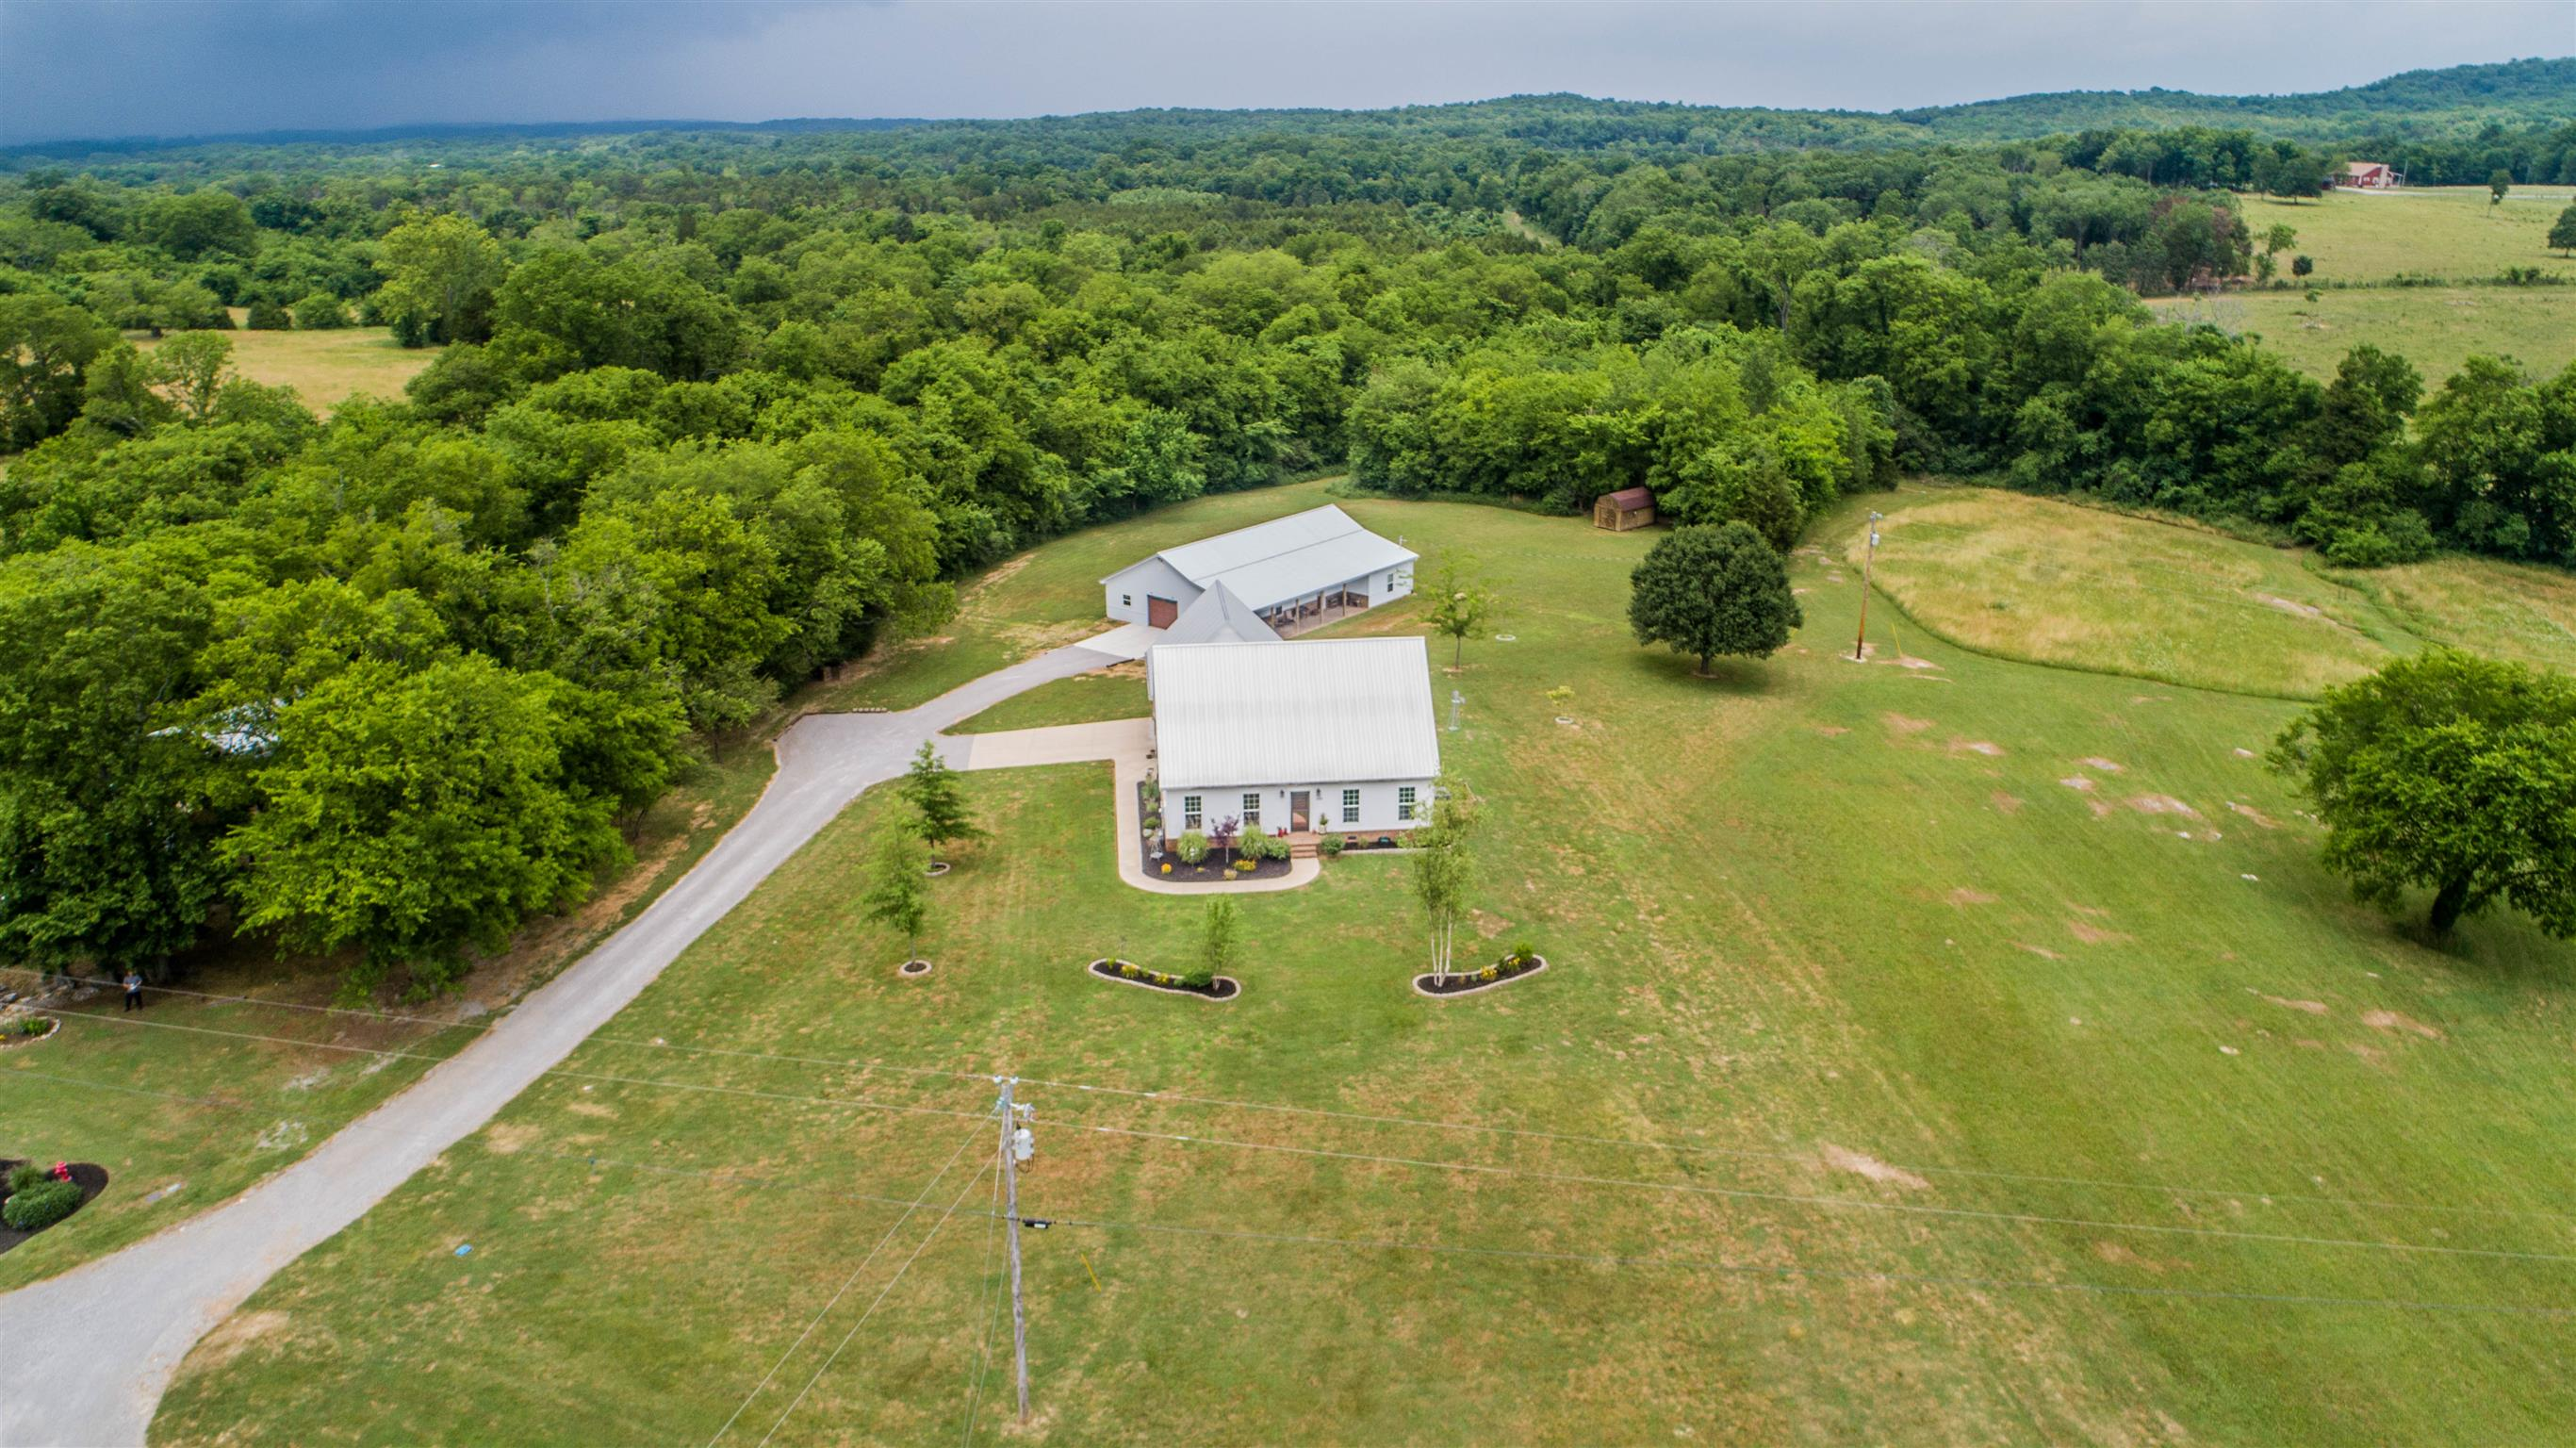 2160 Harris Rd, Lewisburg, TN 37091 - Lewisburg, TN real estate listing